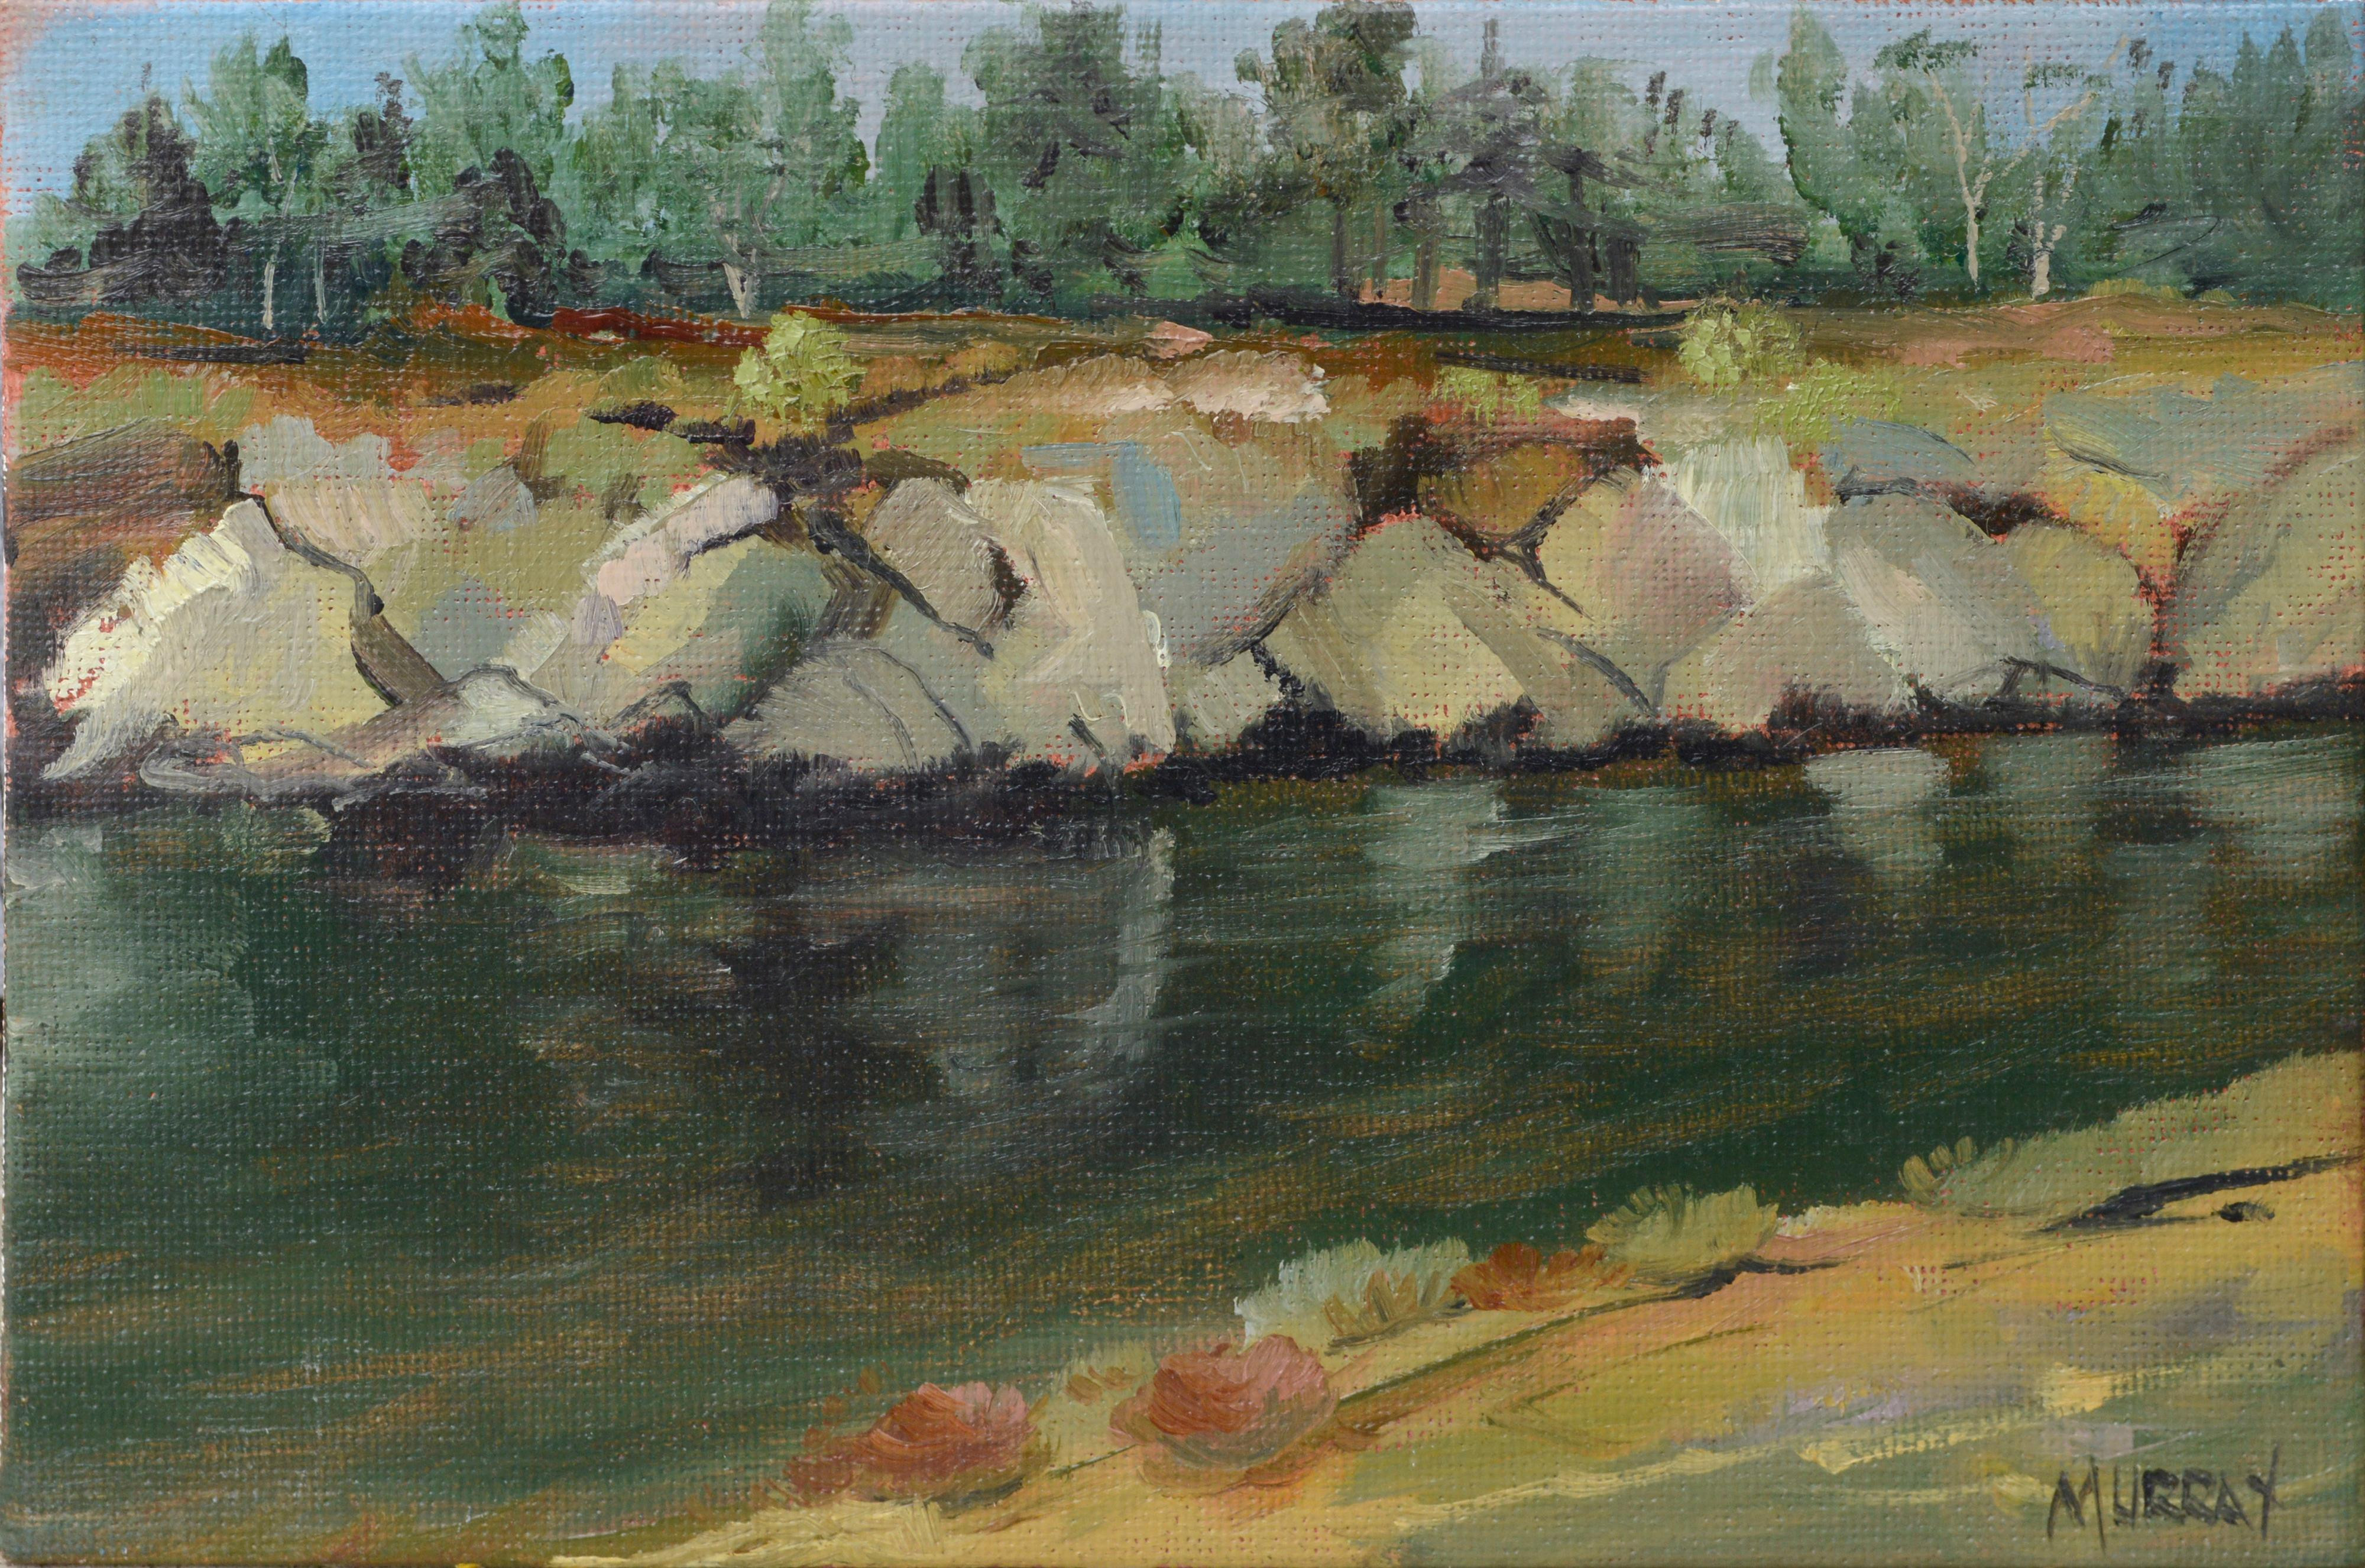 Reflections on the River - Landscape